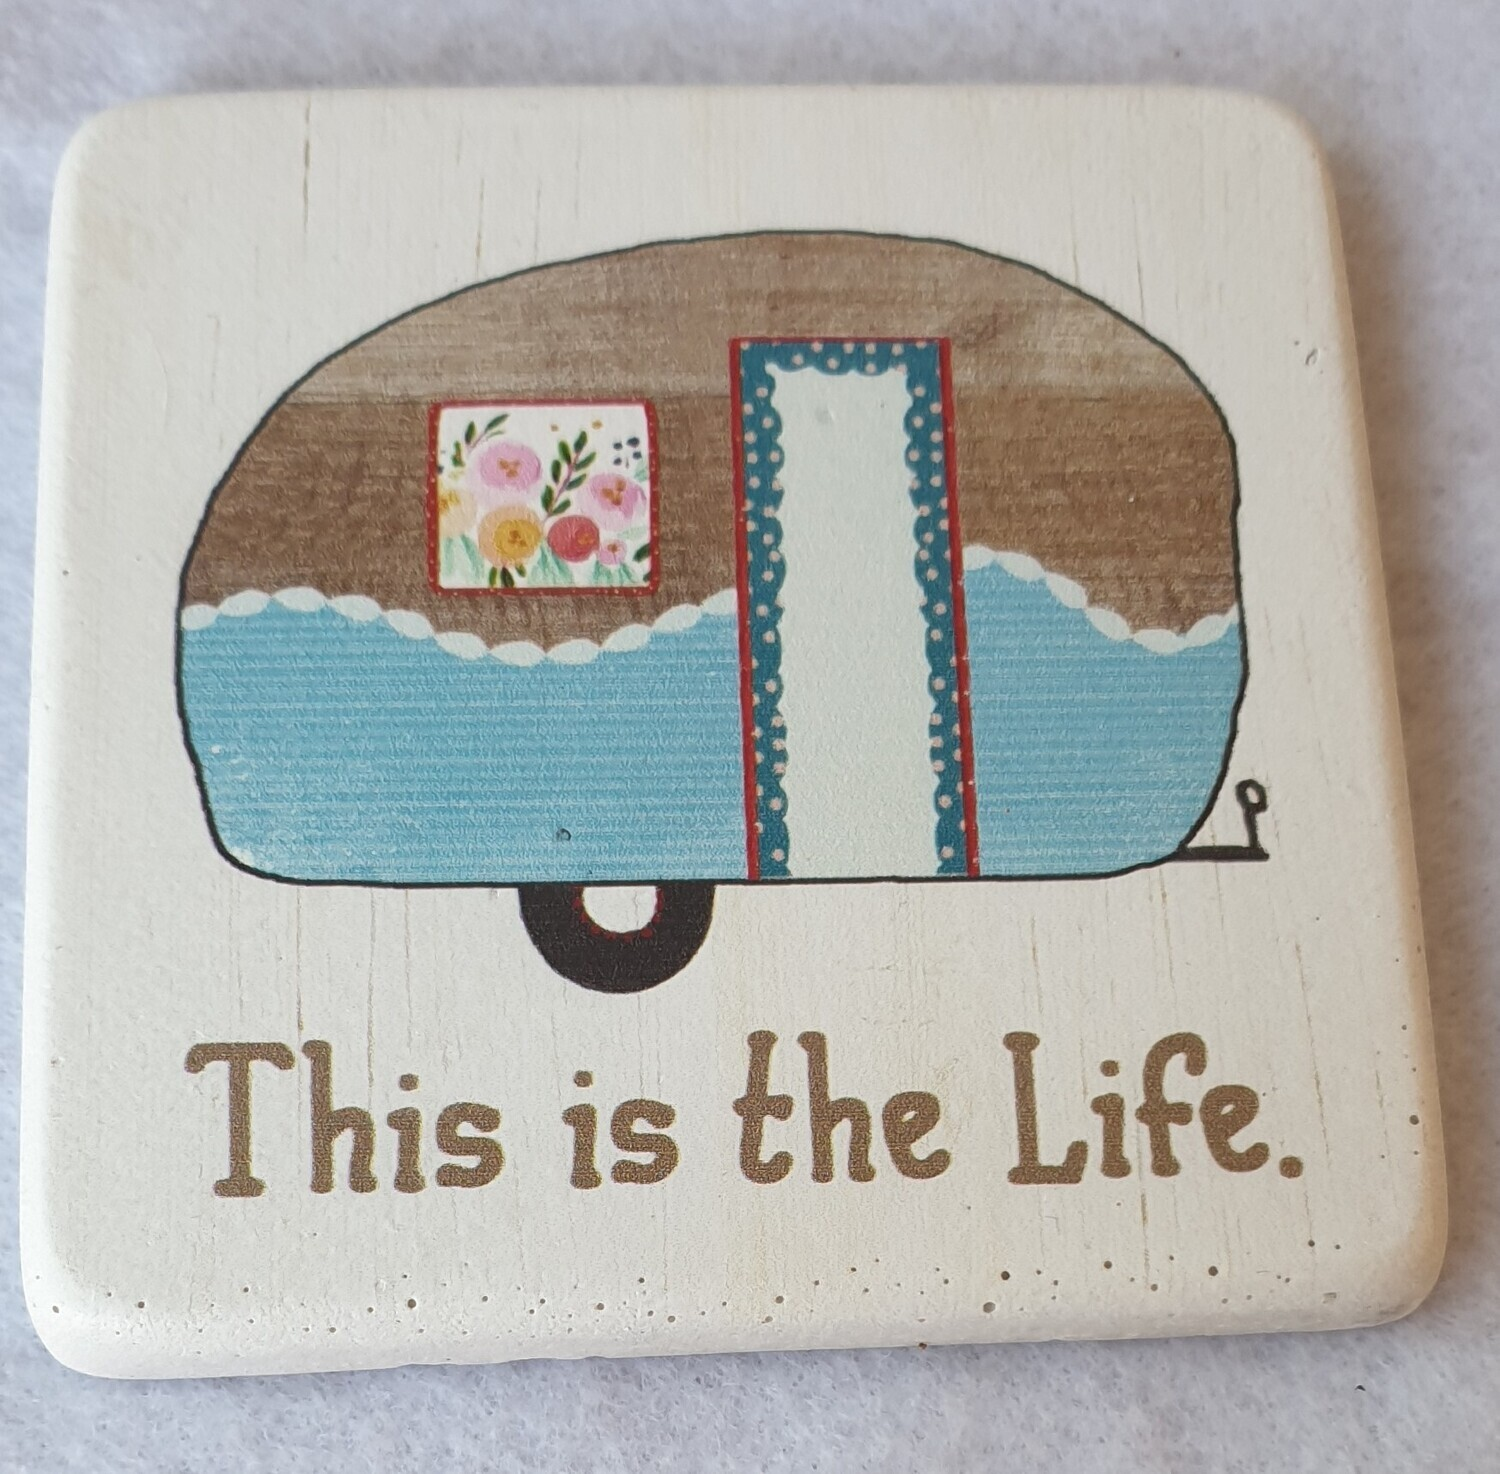 Caravan drinks coaster. This is the life.